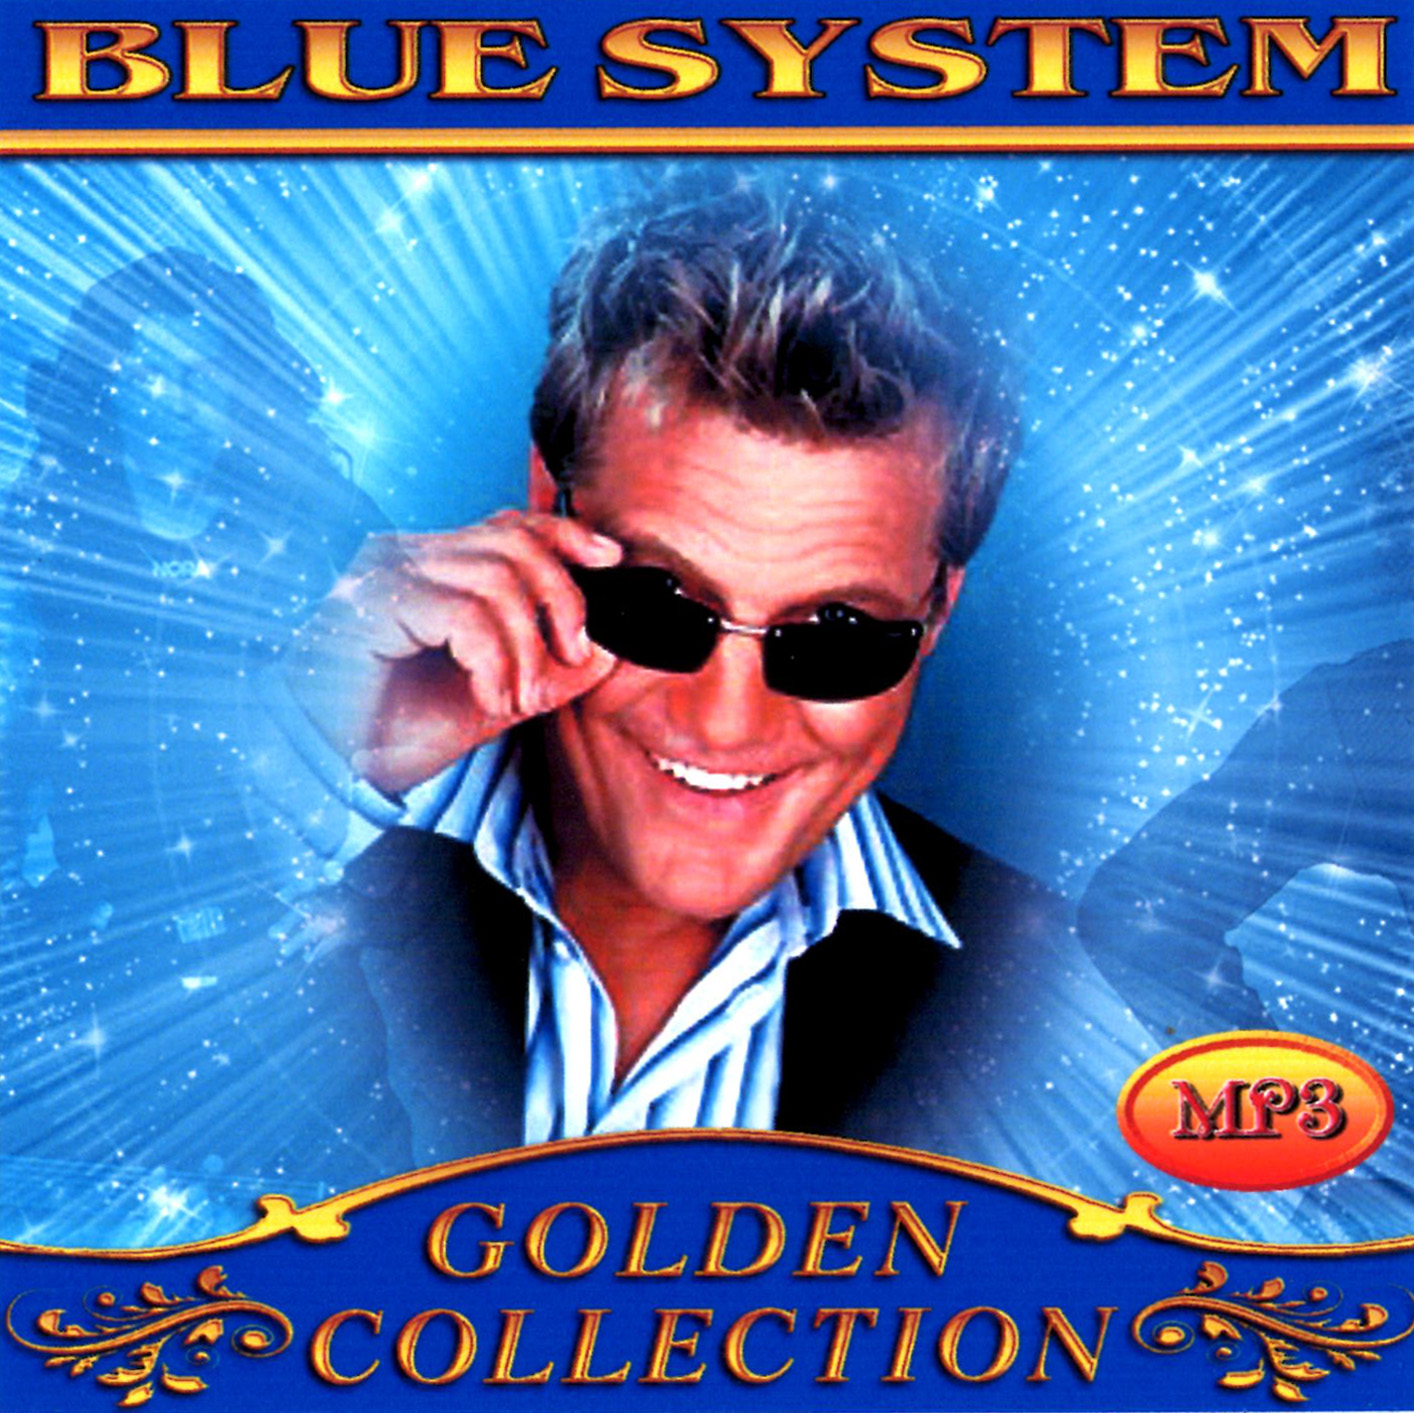 Blue System [mp3]